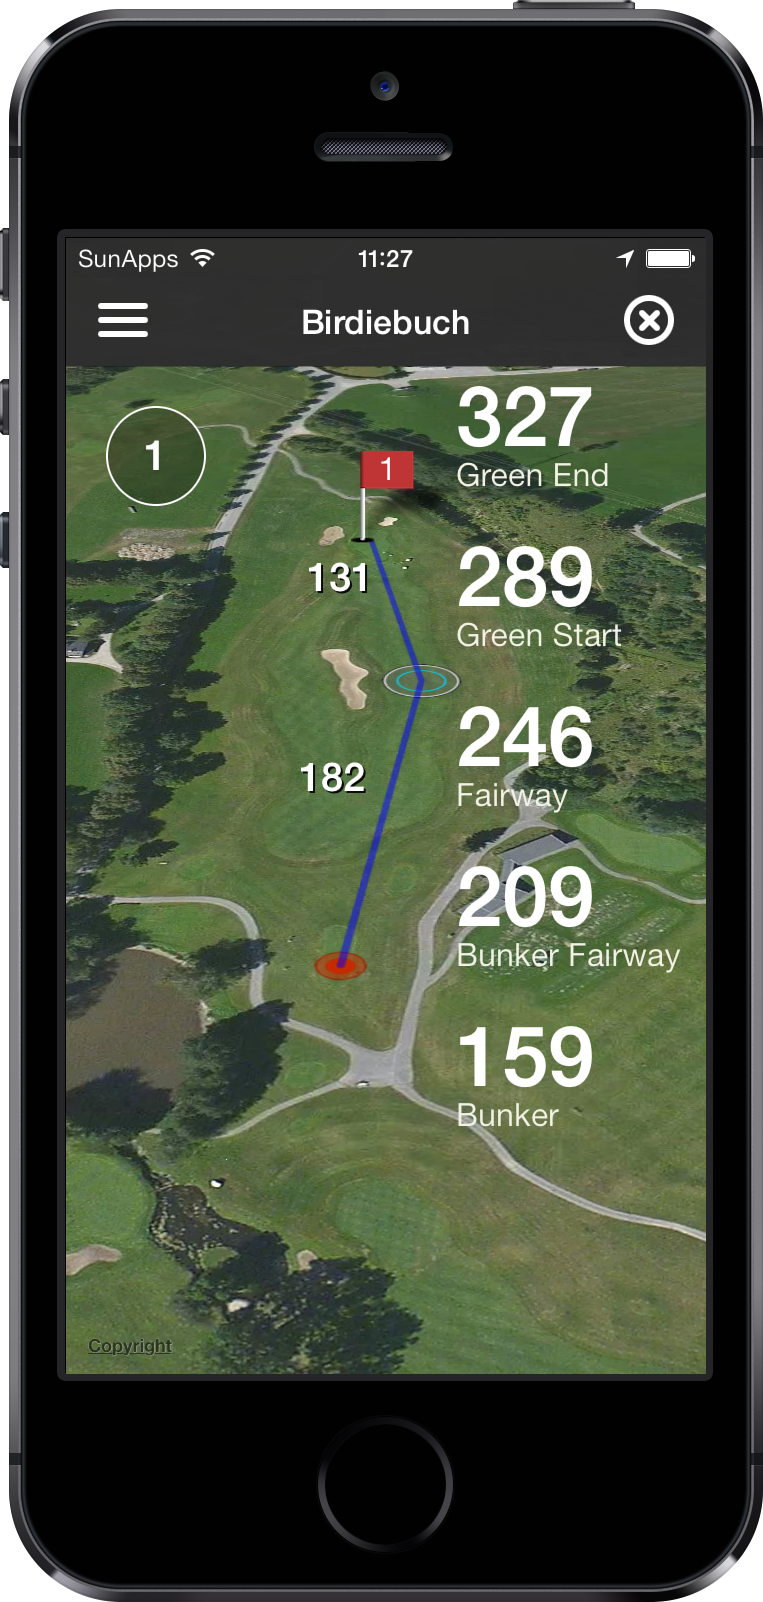 The 3D GPS Birdiebook